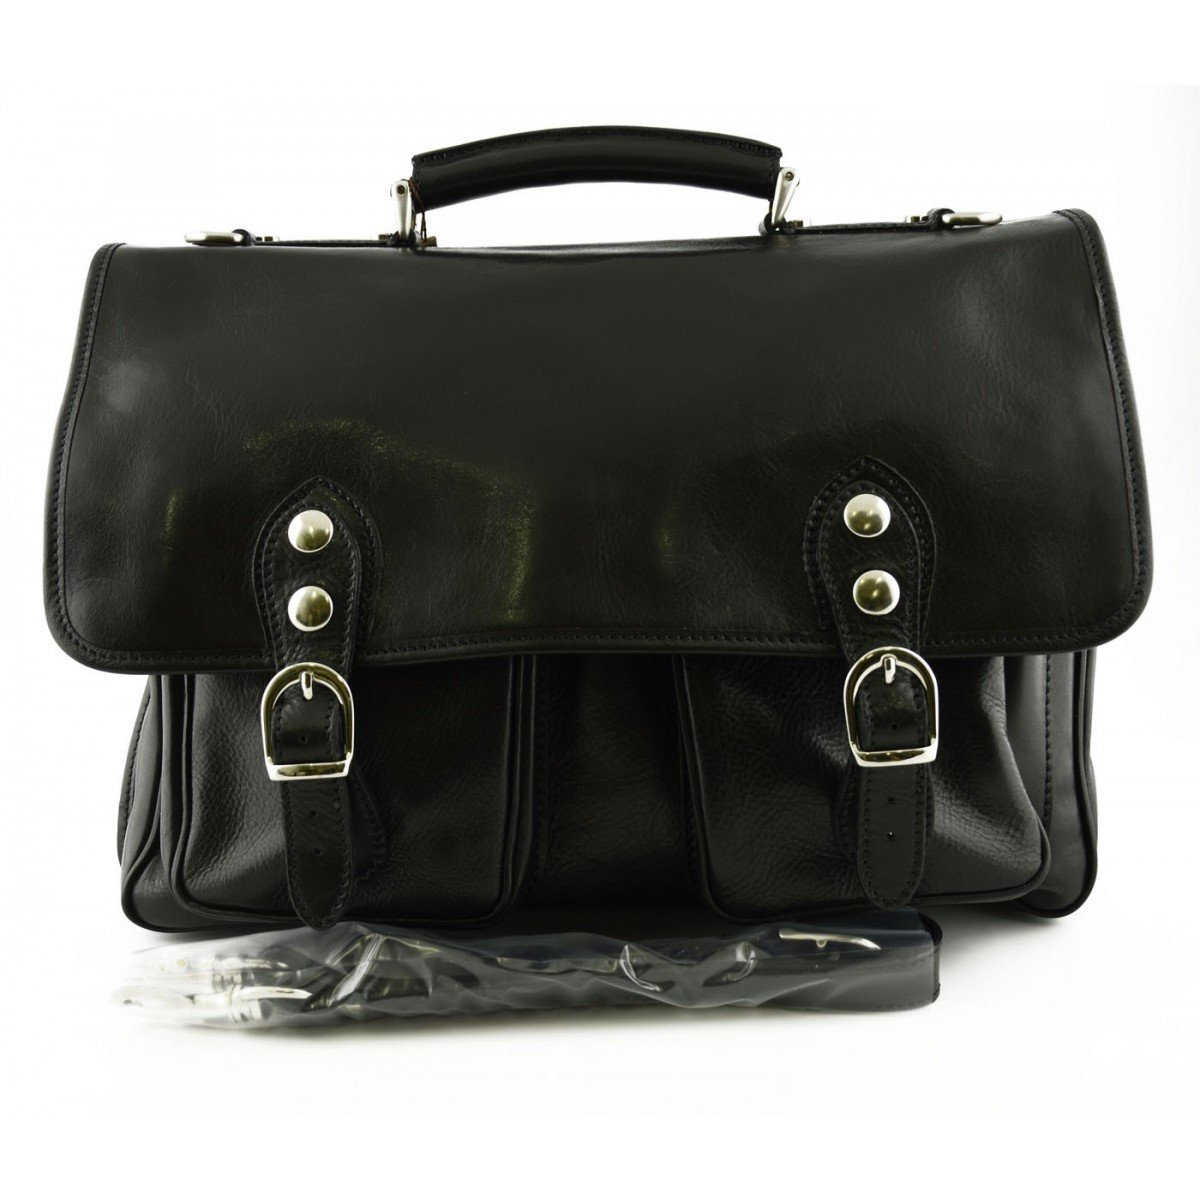 Made In Italy Business Briefcase In Genuine Leather 2 Compartments Color Black - Business Bag   B01LWUEOLF